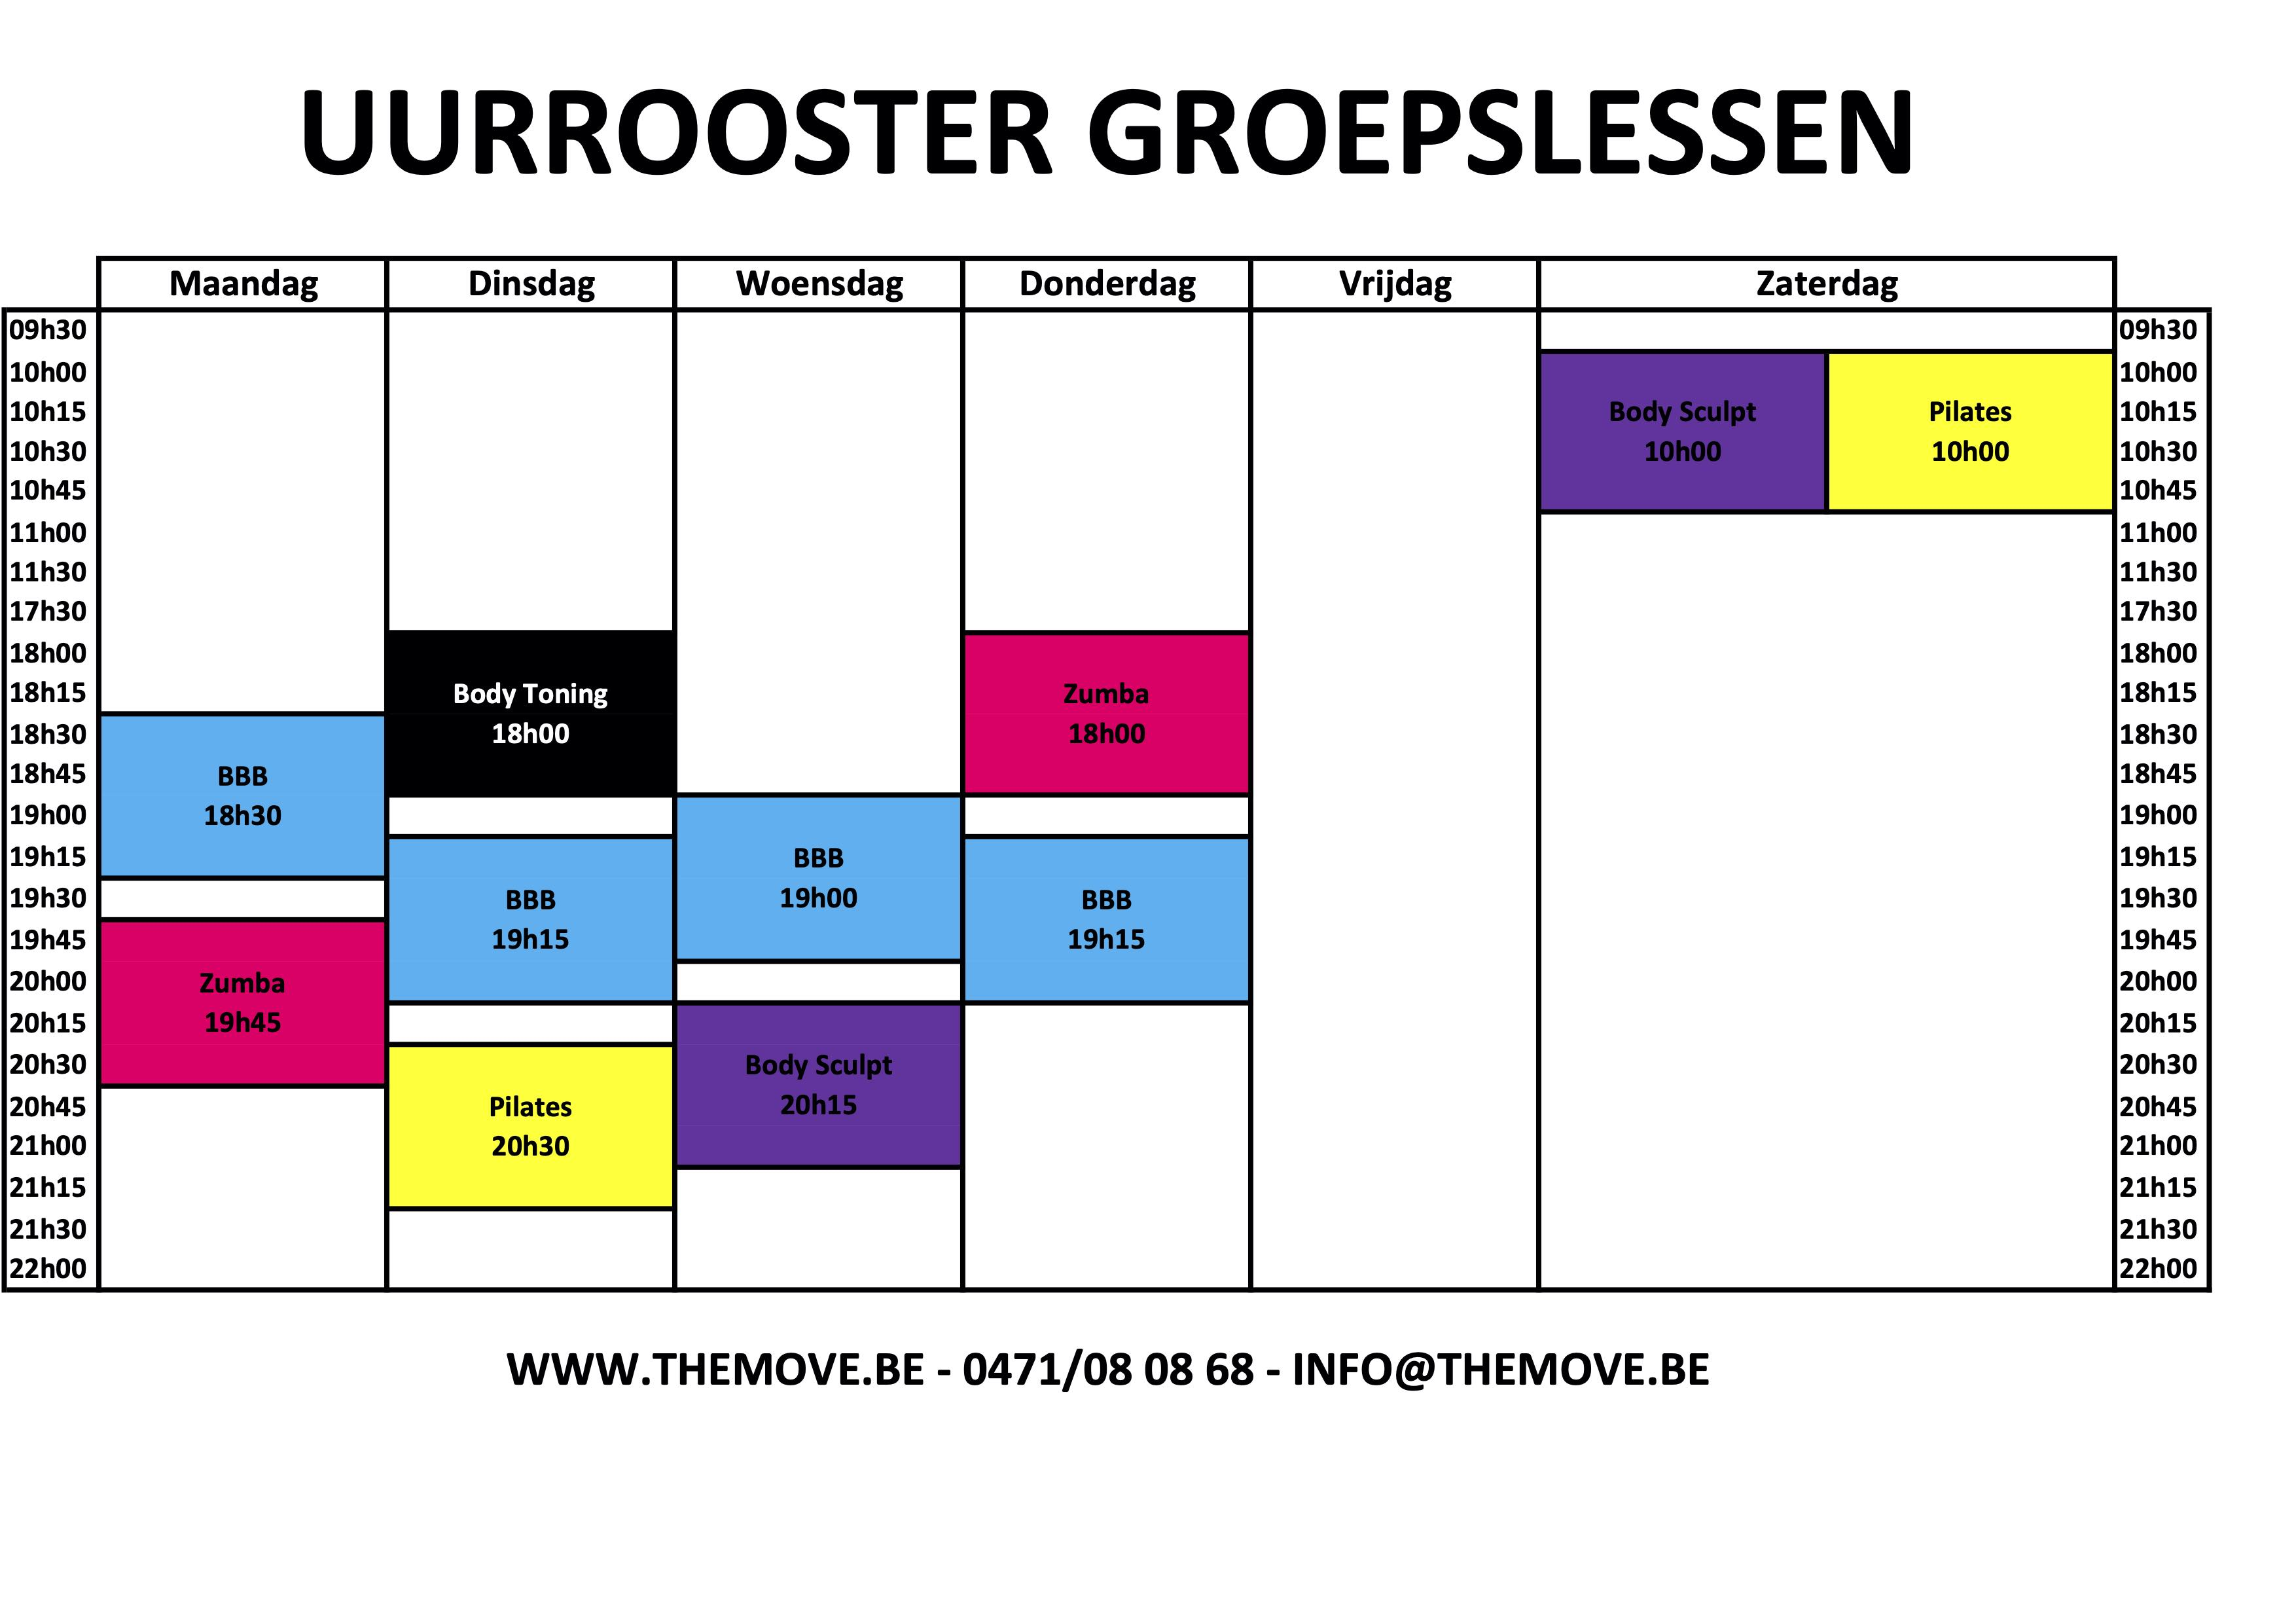 Uuurroster zomer 2020 xlsx